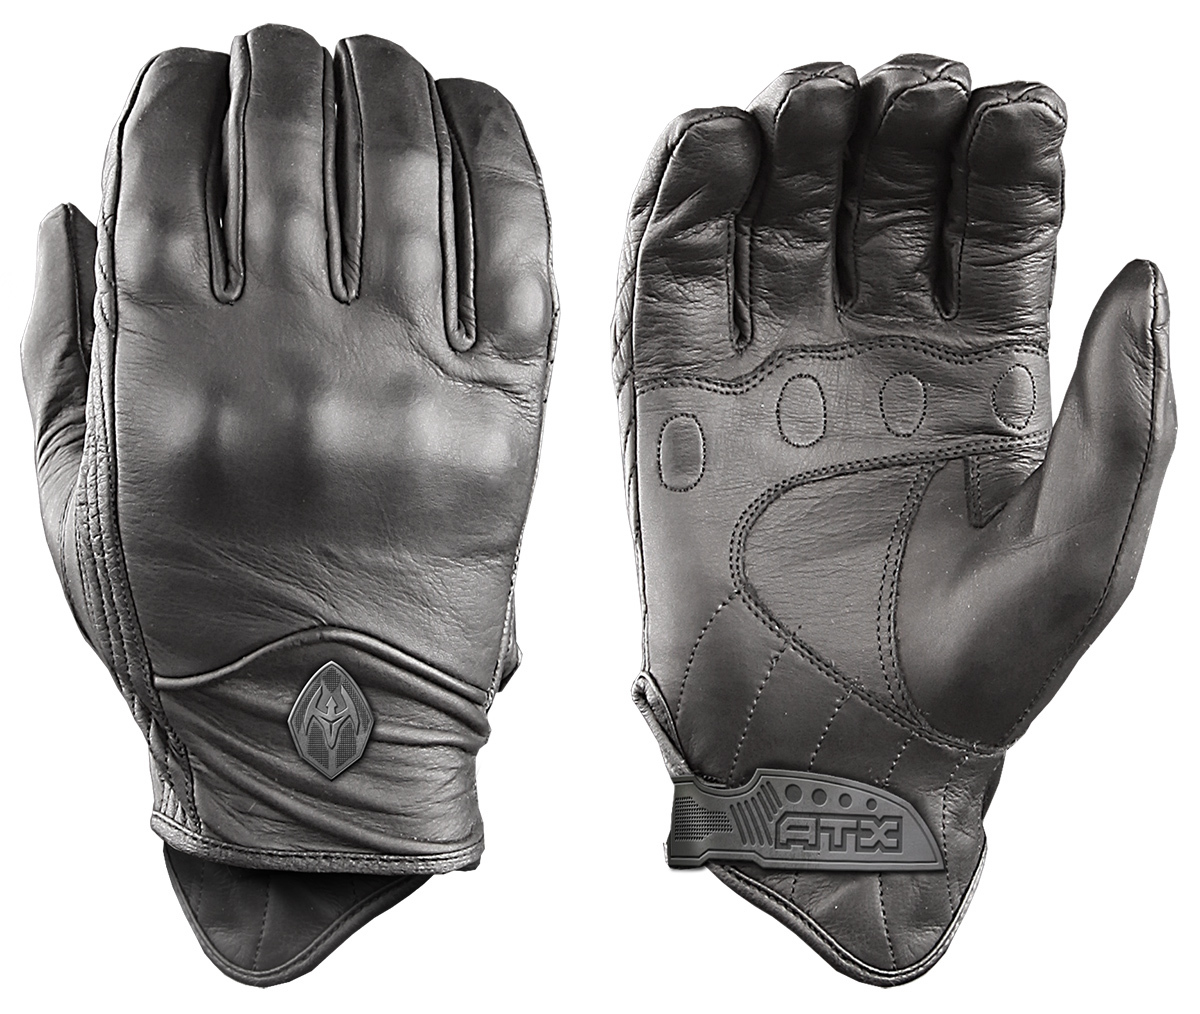 All-Leather Gloves with Knuckle Armor ATX95